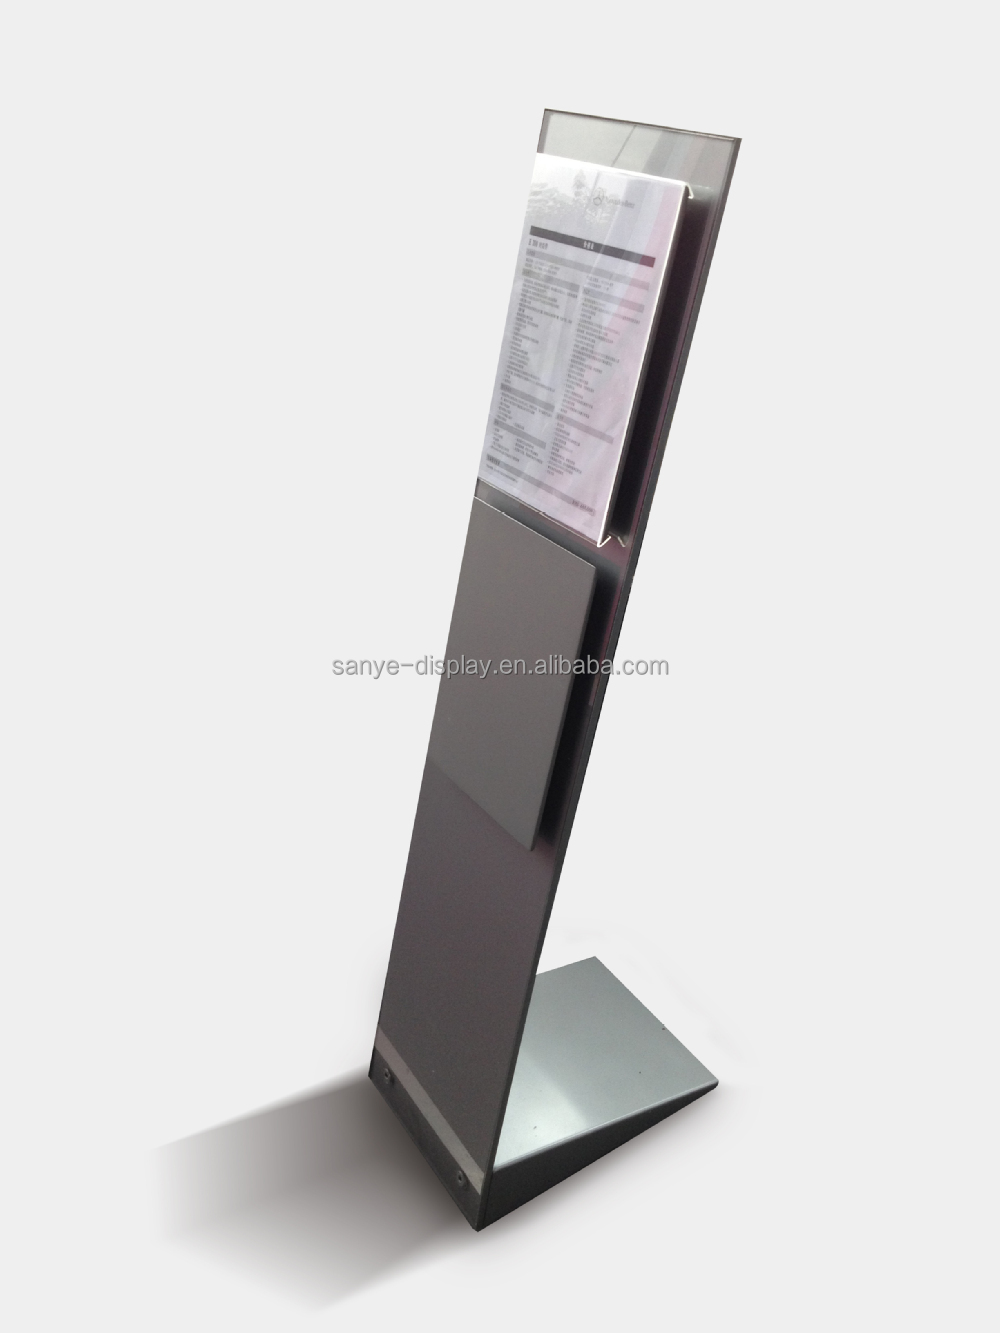 Auto show shelf foldable display stand metal shelf buy for Stand auto